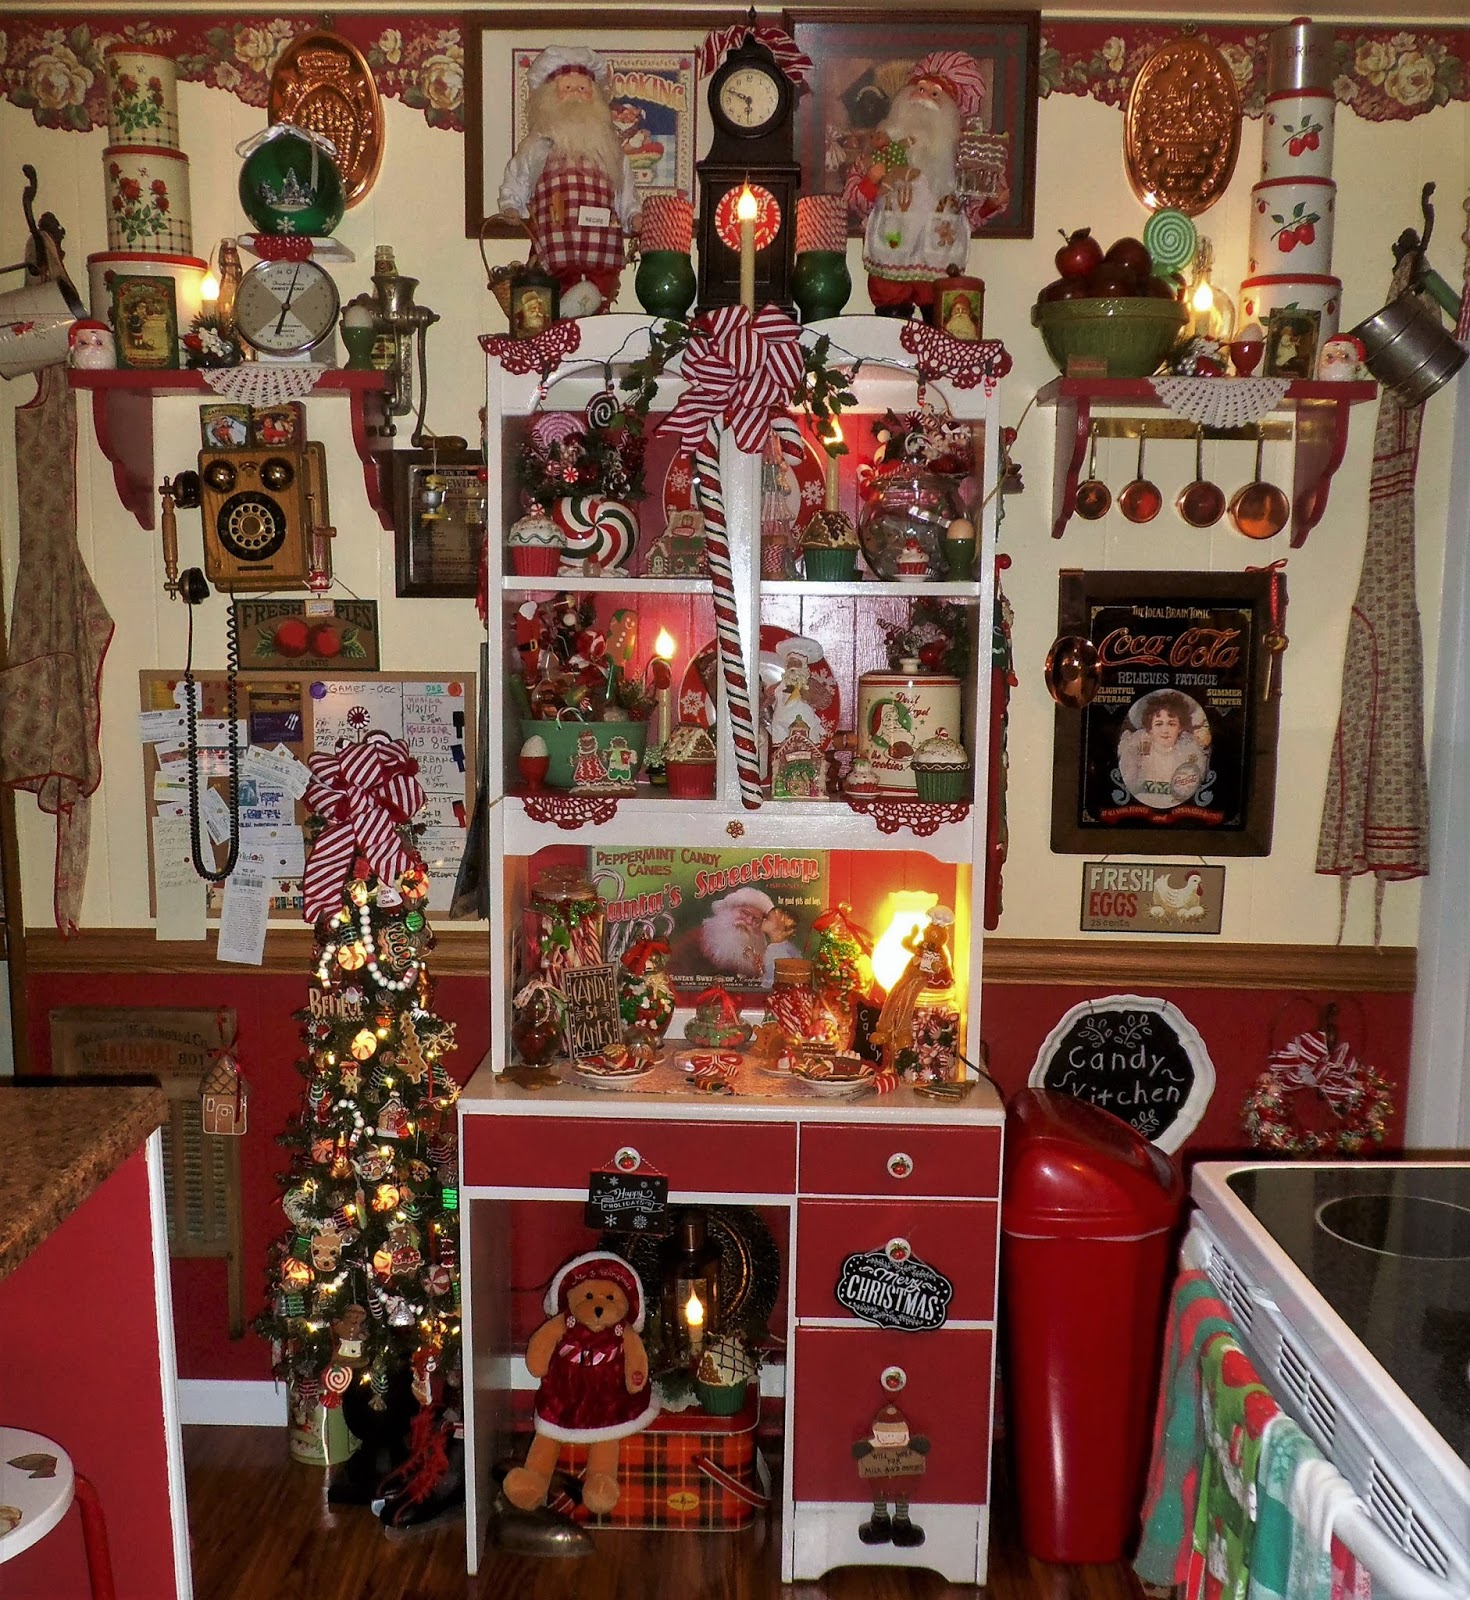 Dunmore Candy Kitchen Home: A DEBBIE-DABBLE CHRISTMAS: Christmas Candy Kitchen, Part 1